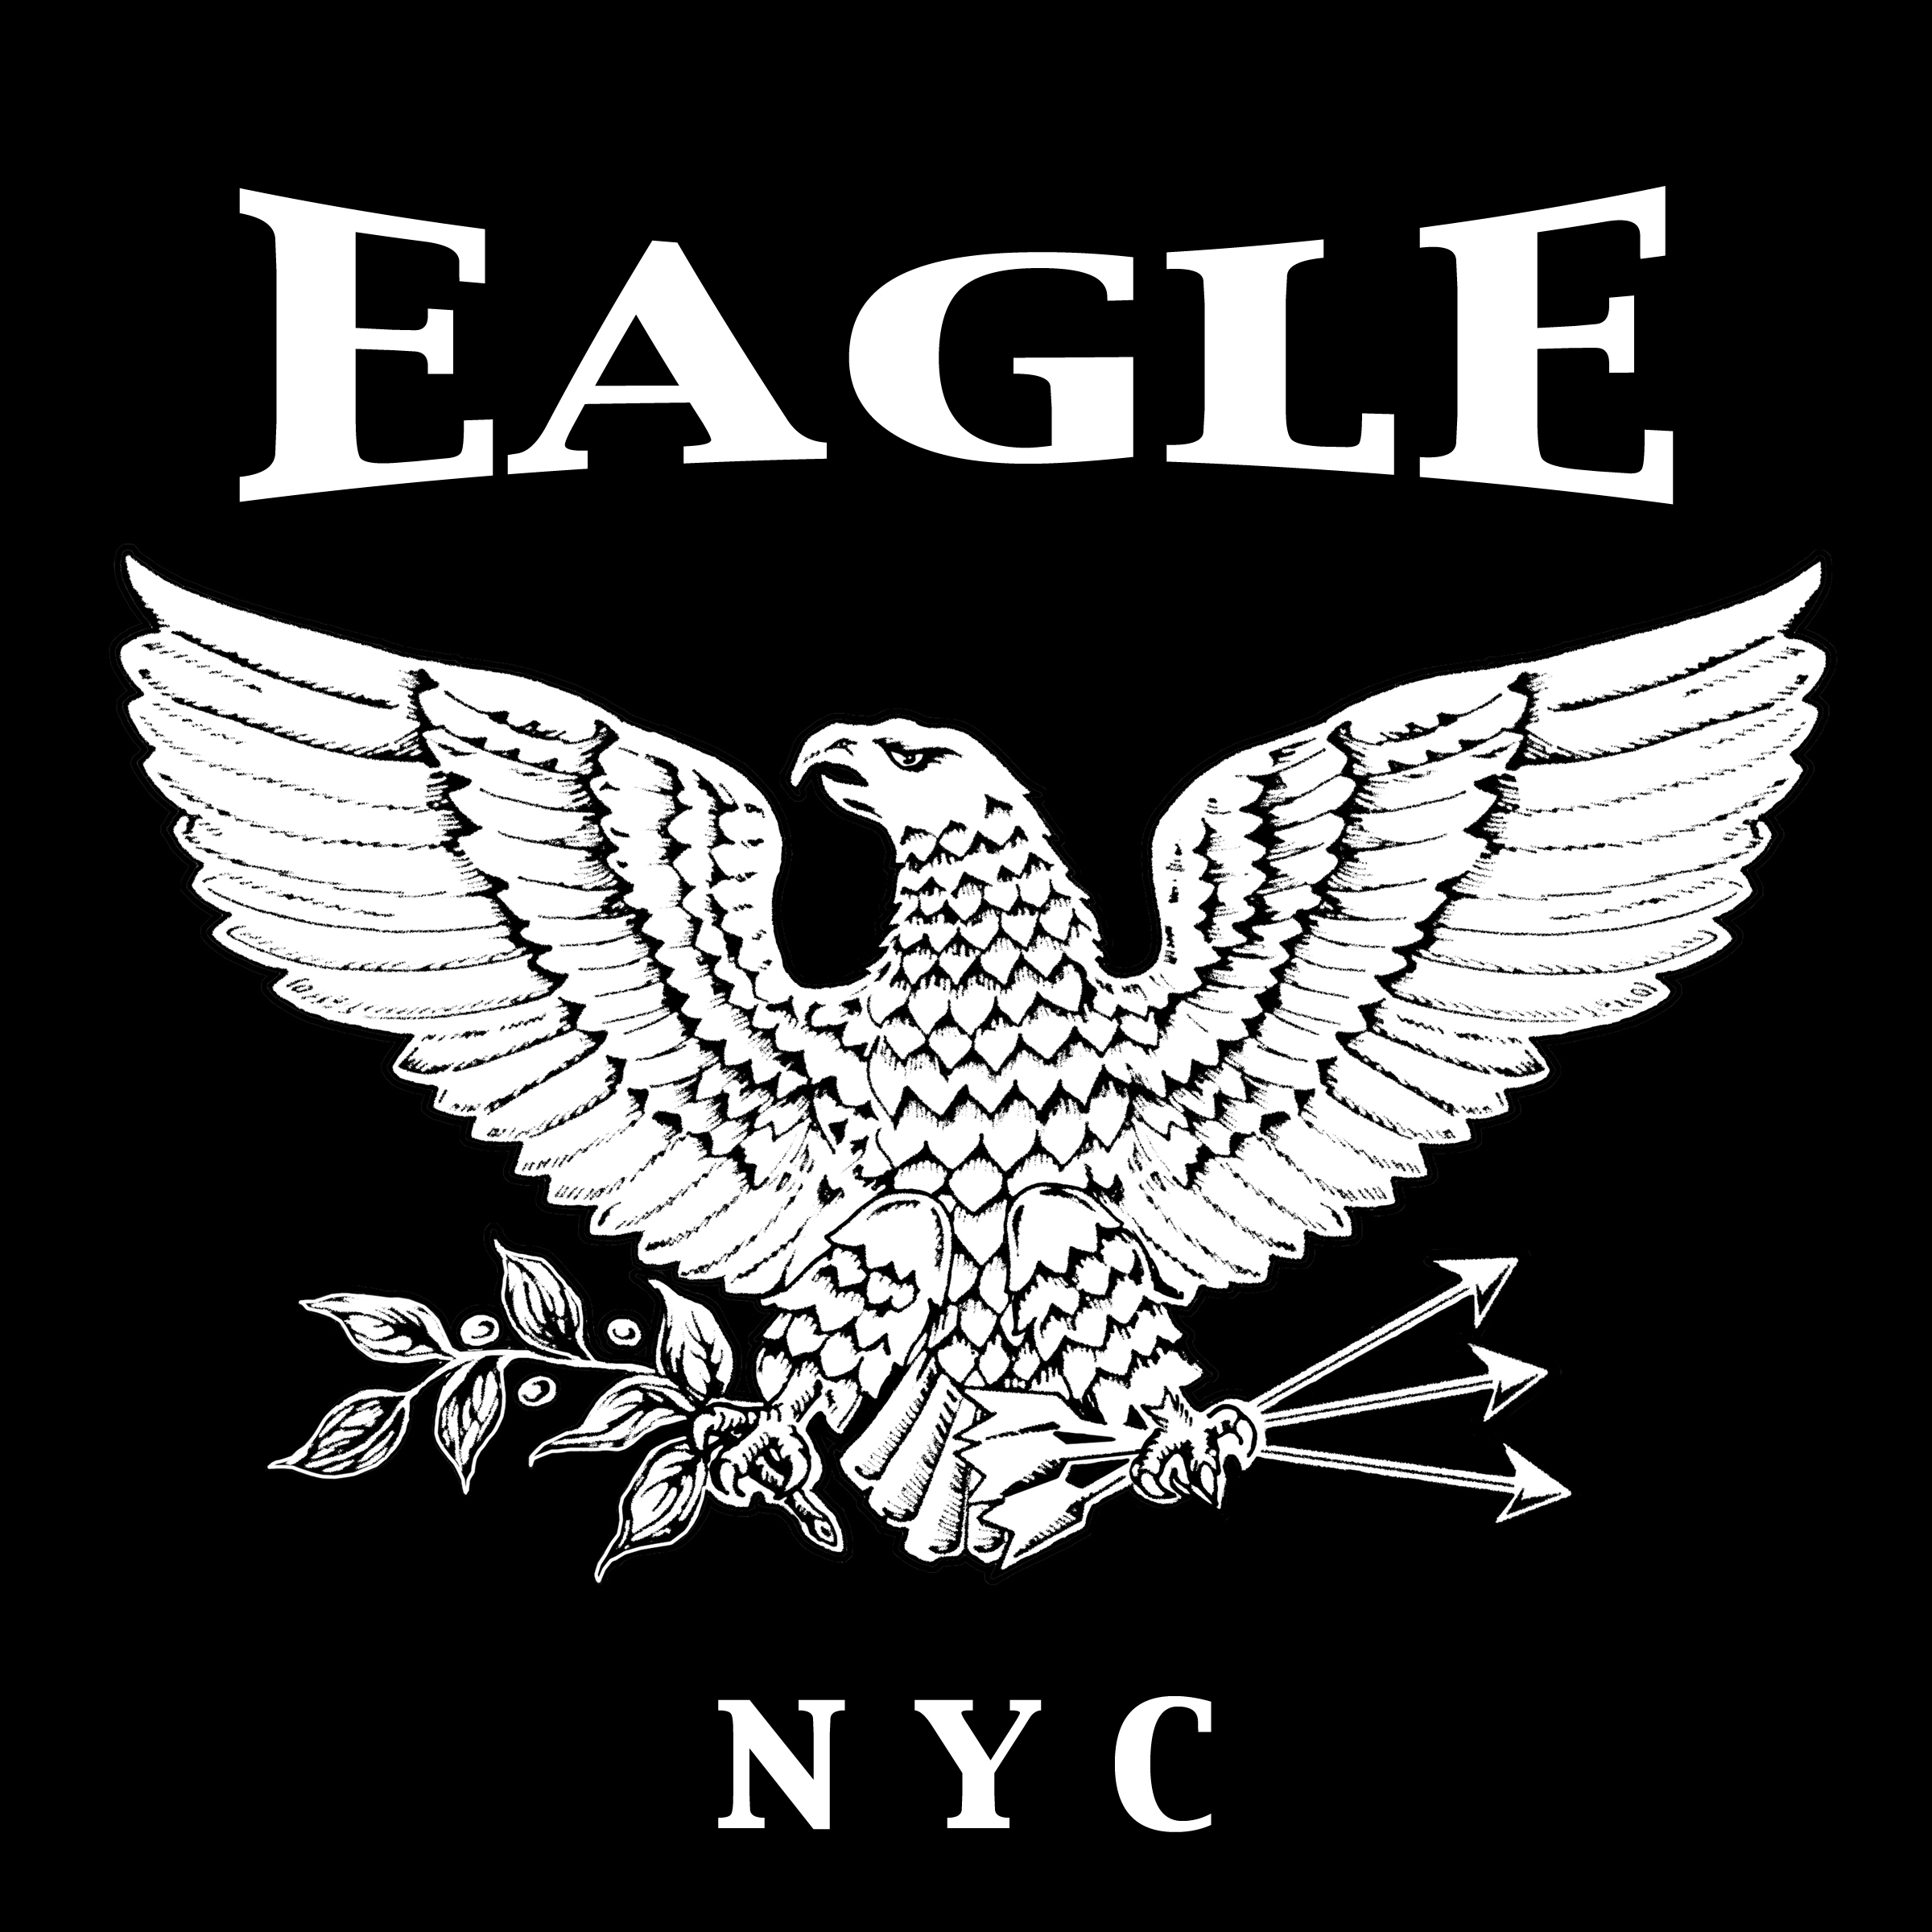 Revised_eagle-nyc_600ppi